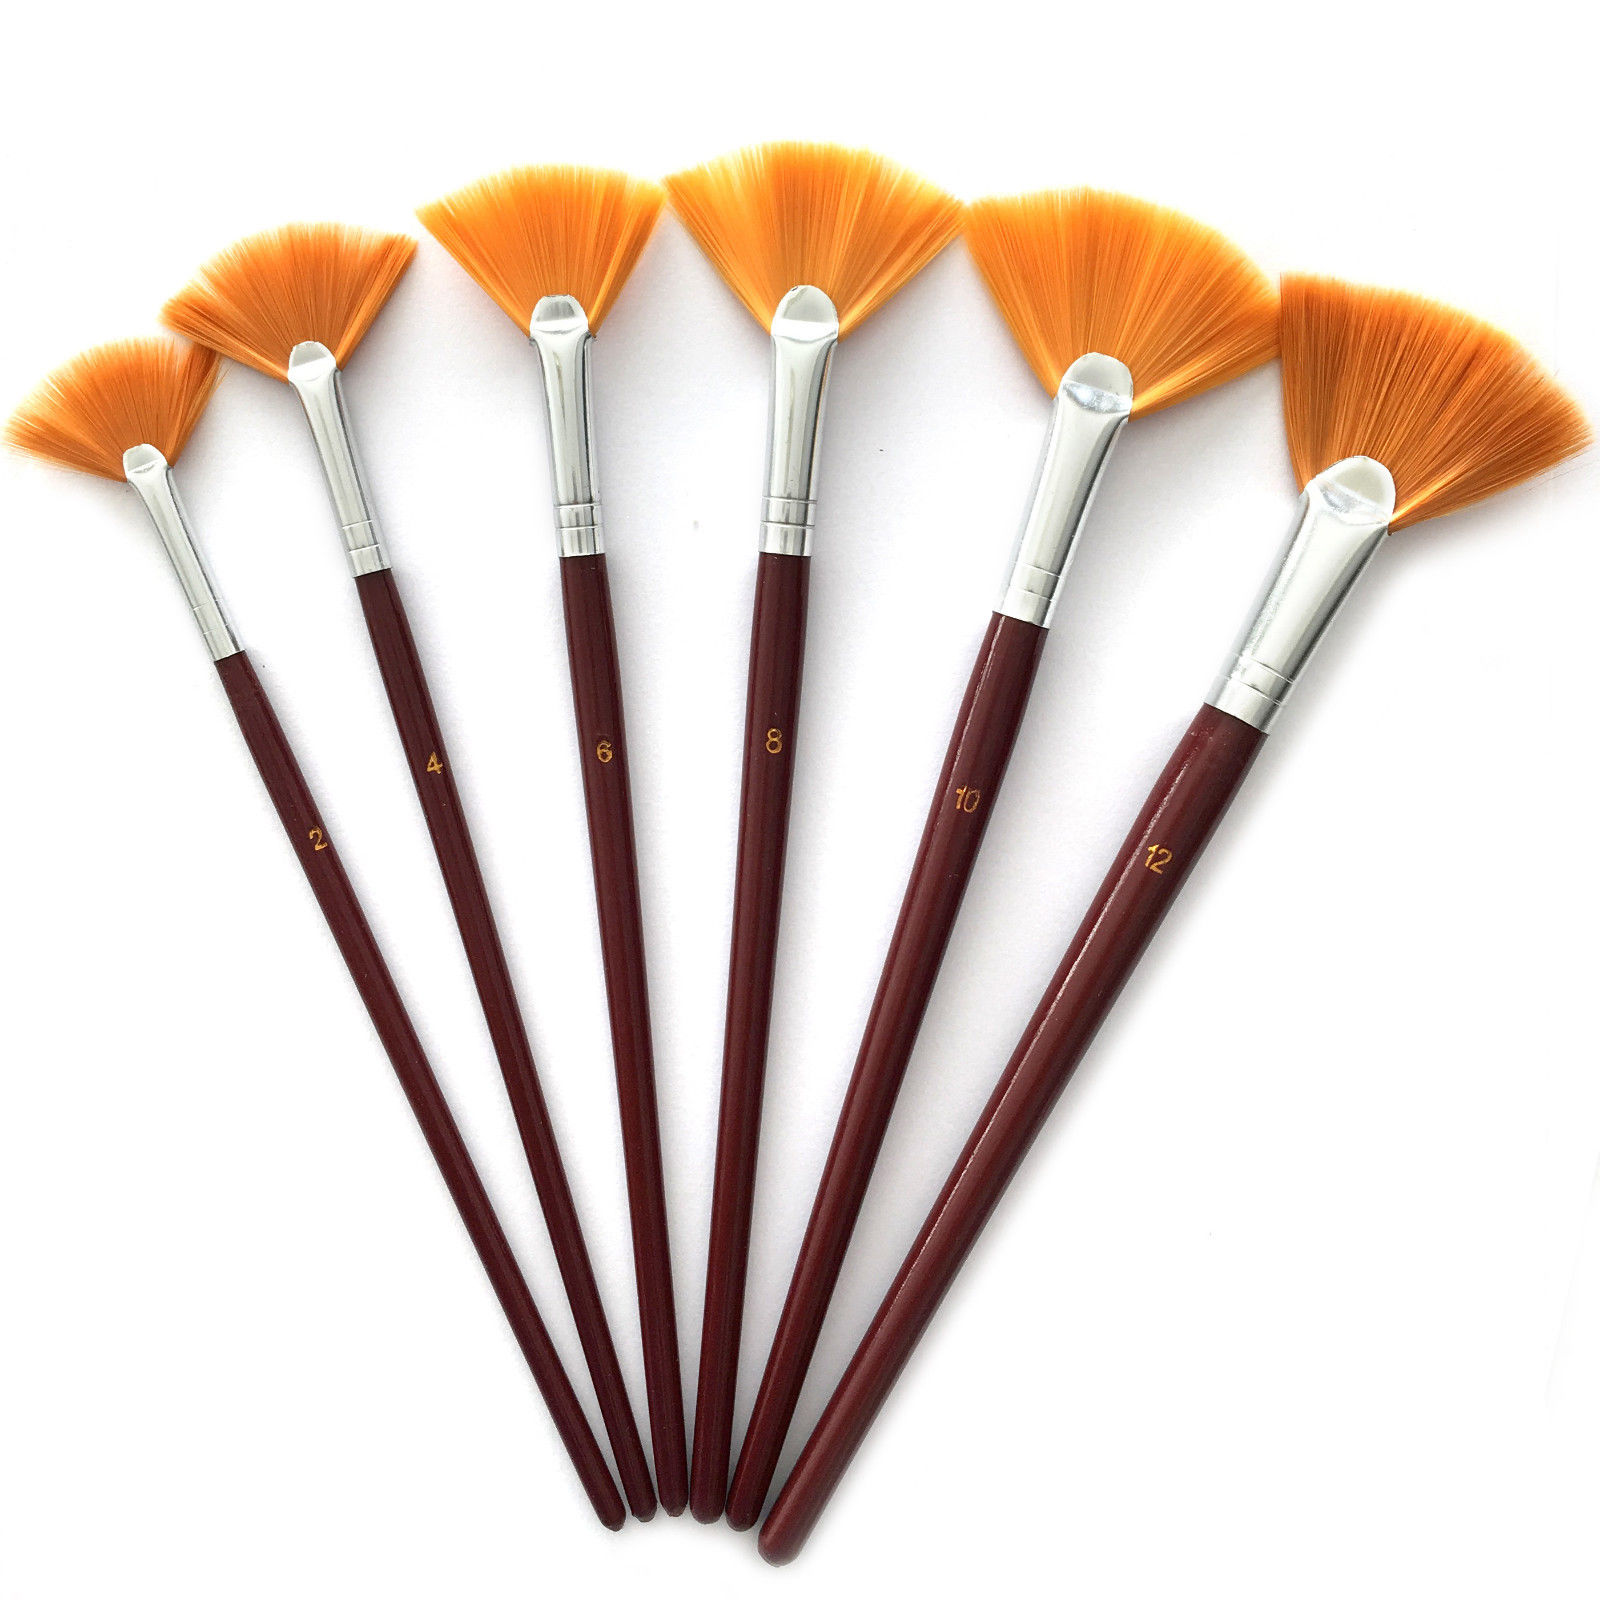 Best quality Roller design best paint brushes for acrylic painting quality paint brushes Wholesale low price high quality